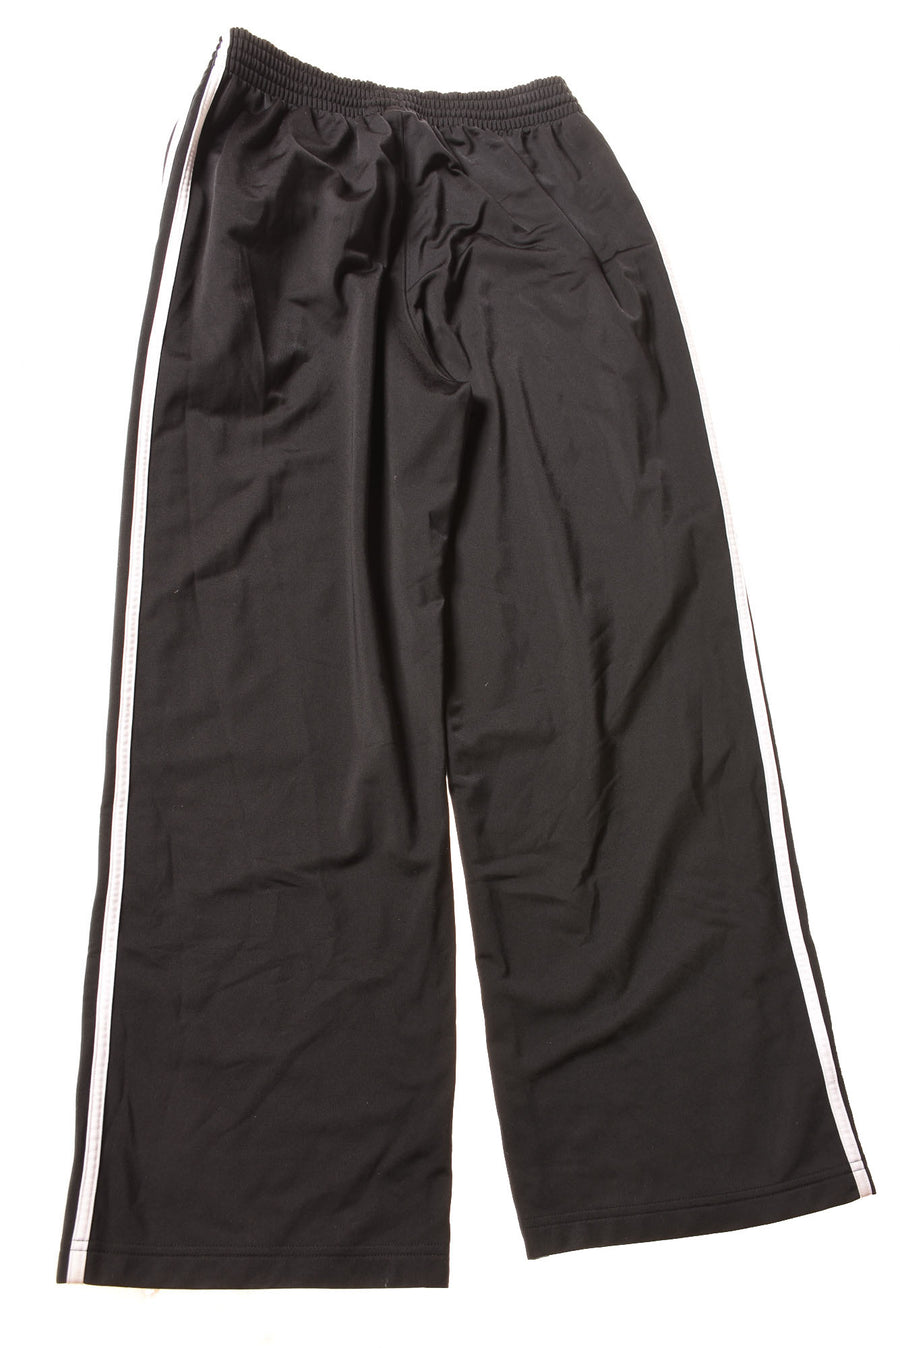 Men's Pants By Adidas